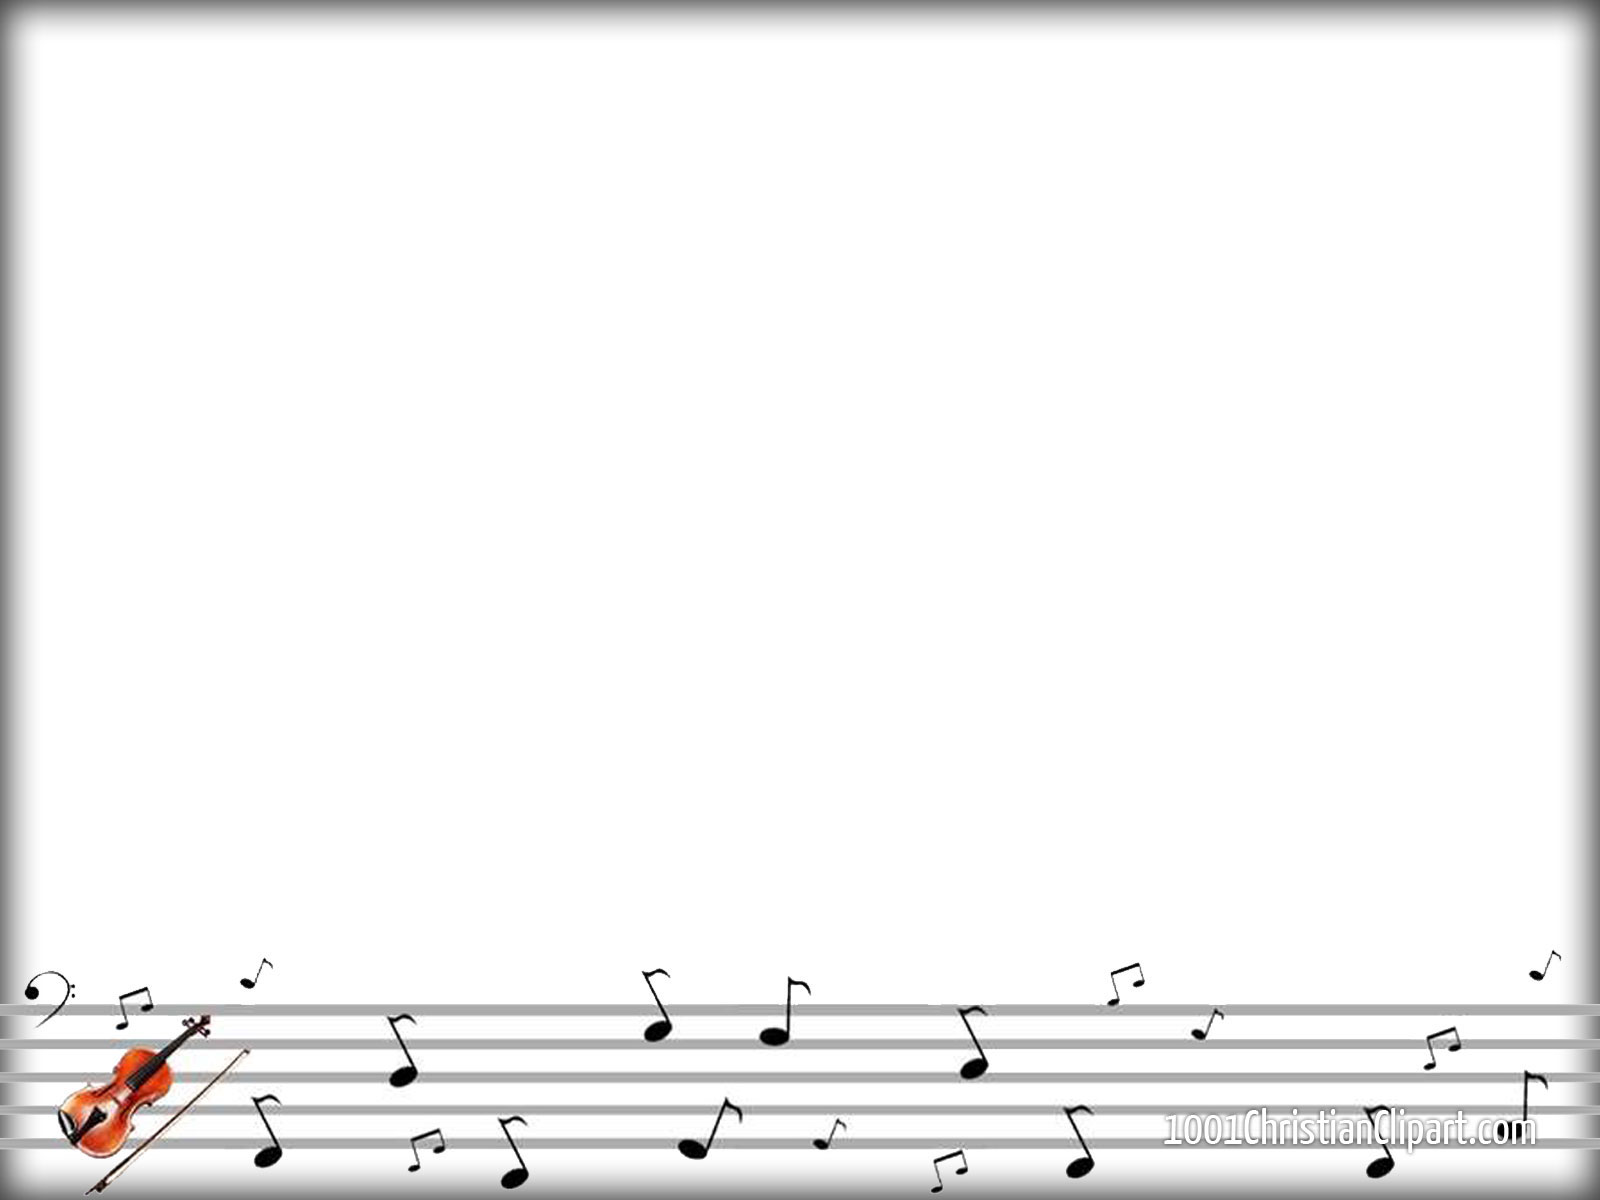 Listen to the music 1001 christian clipart for Music themed powerpoint templates